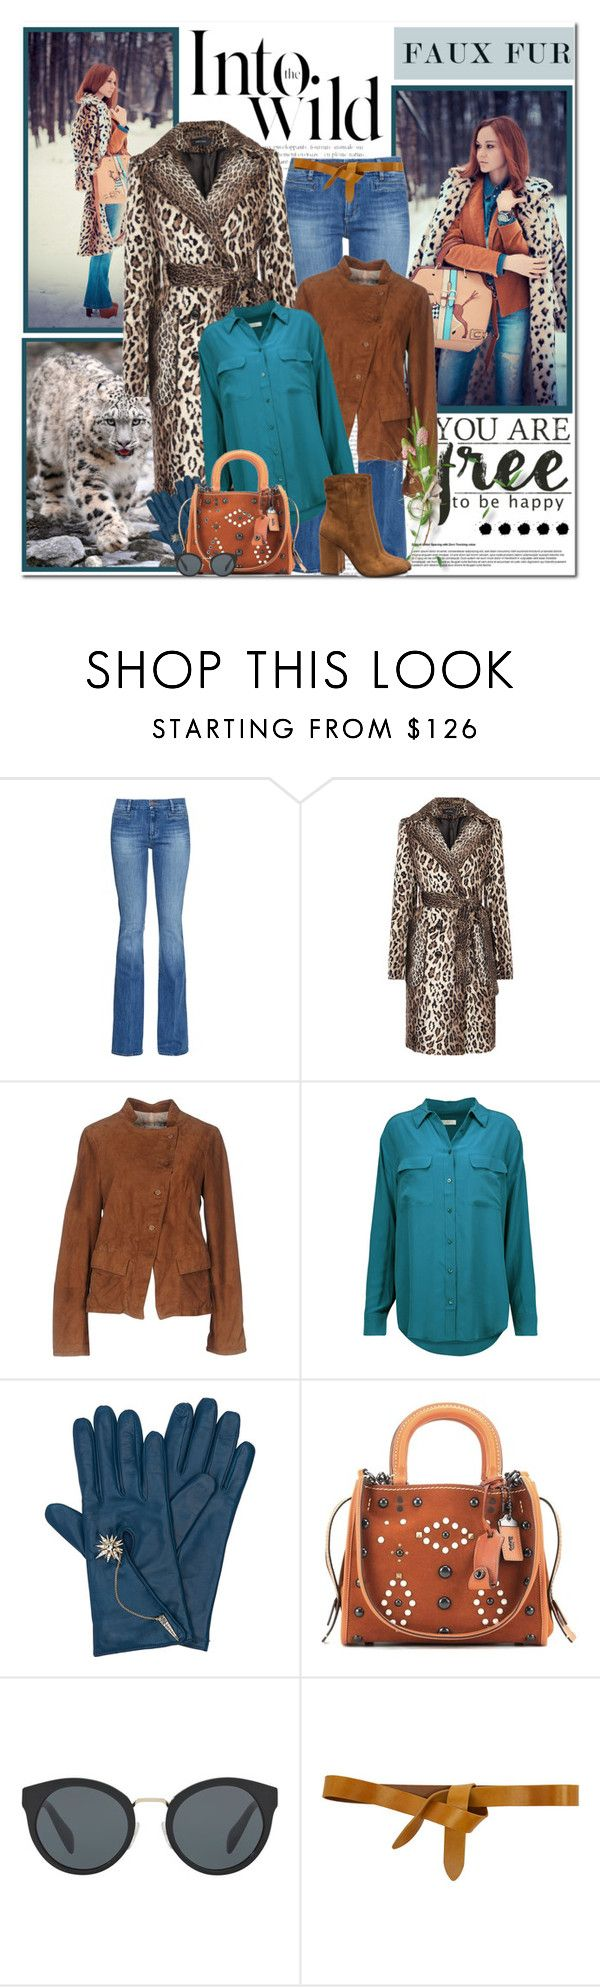 """""""Faux Fur Coats"""" by likepolyfashion ❤ liked on Polyvore featuring M.i.h Jeans, VINTAGE DE LUXE, Equipment, Henri Bendel, Coach, Anja, Prada, Isabel Marant, Gianvito Rossi and fauxfur"""